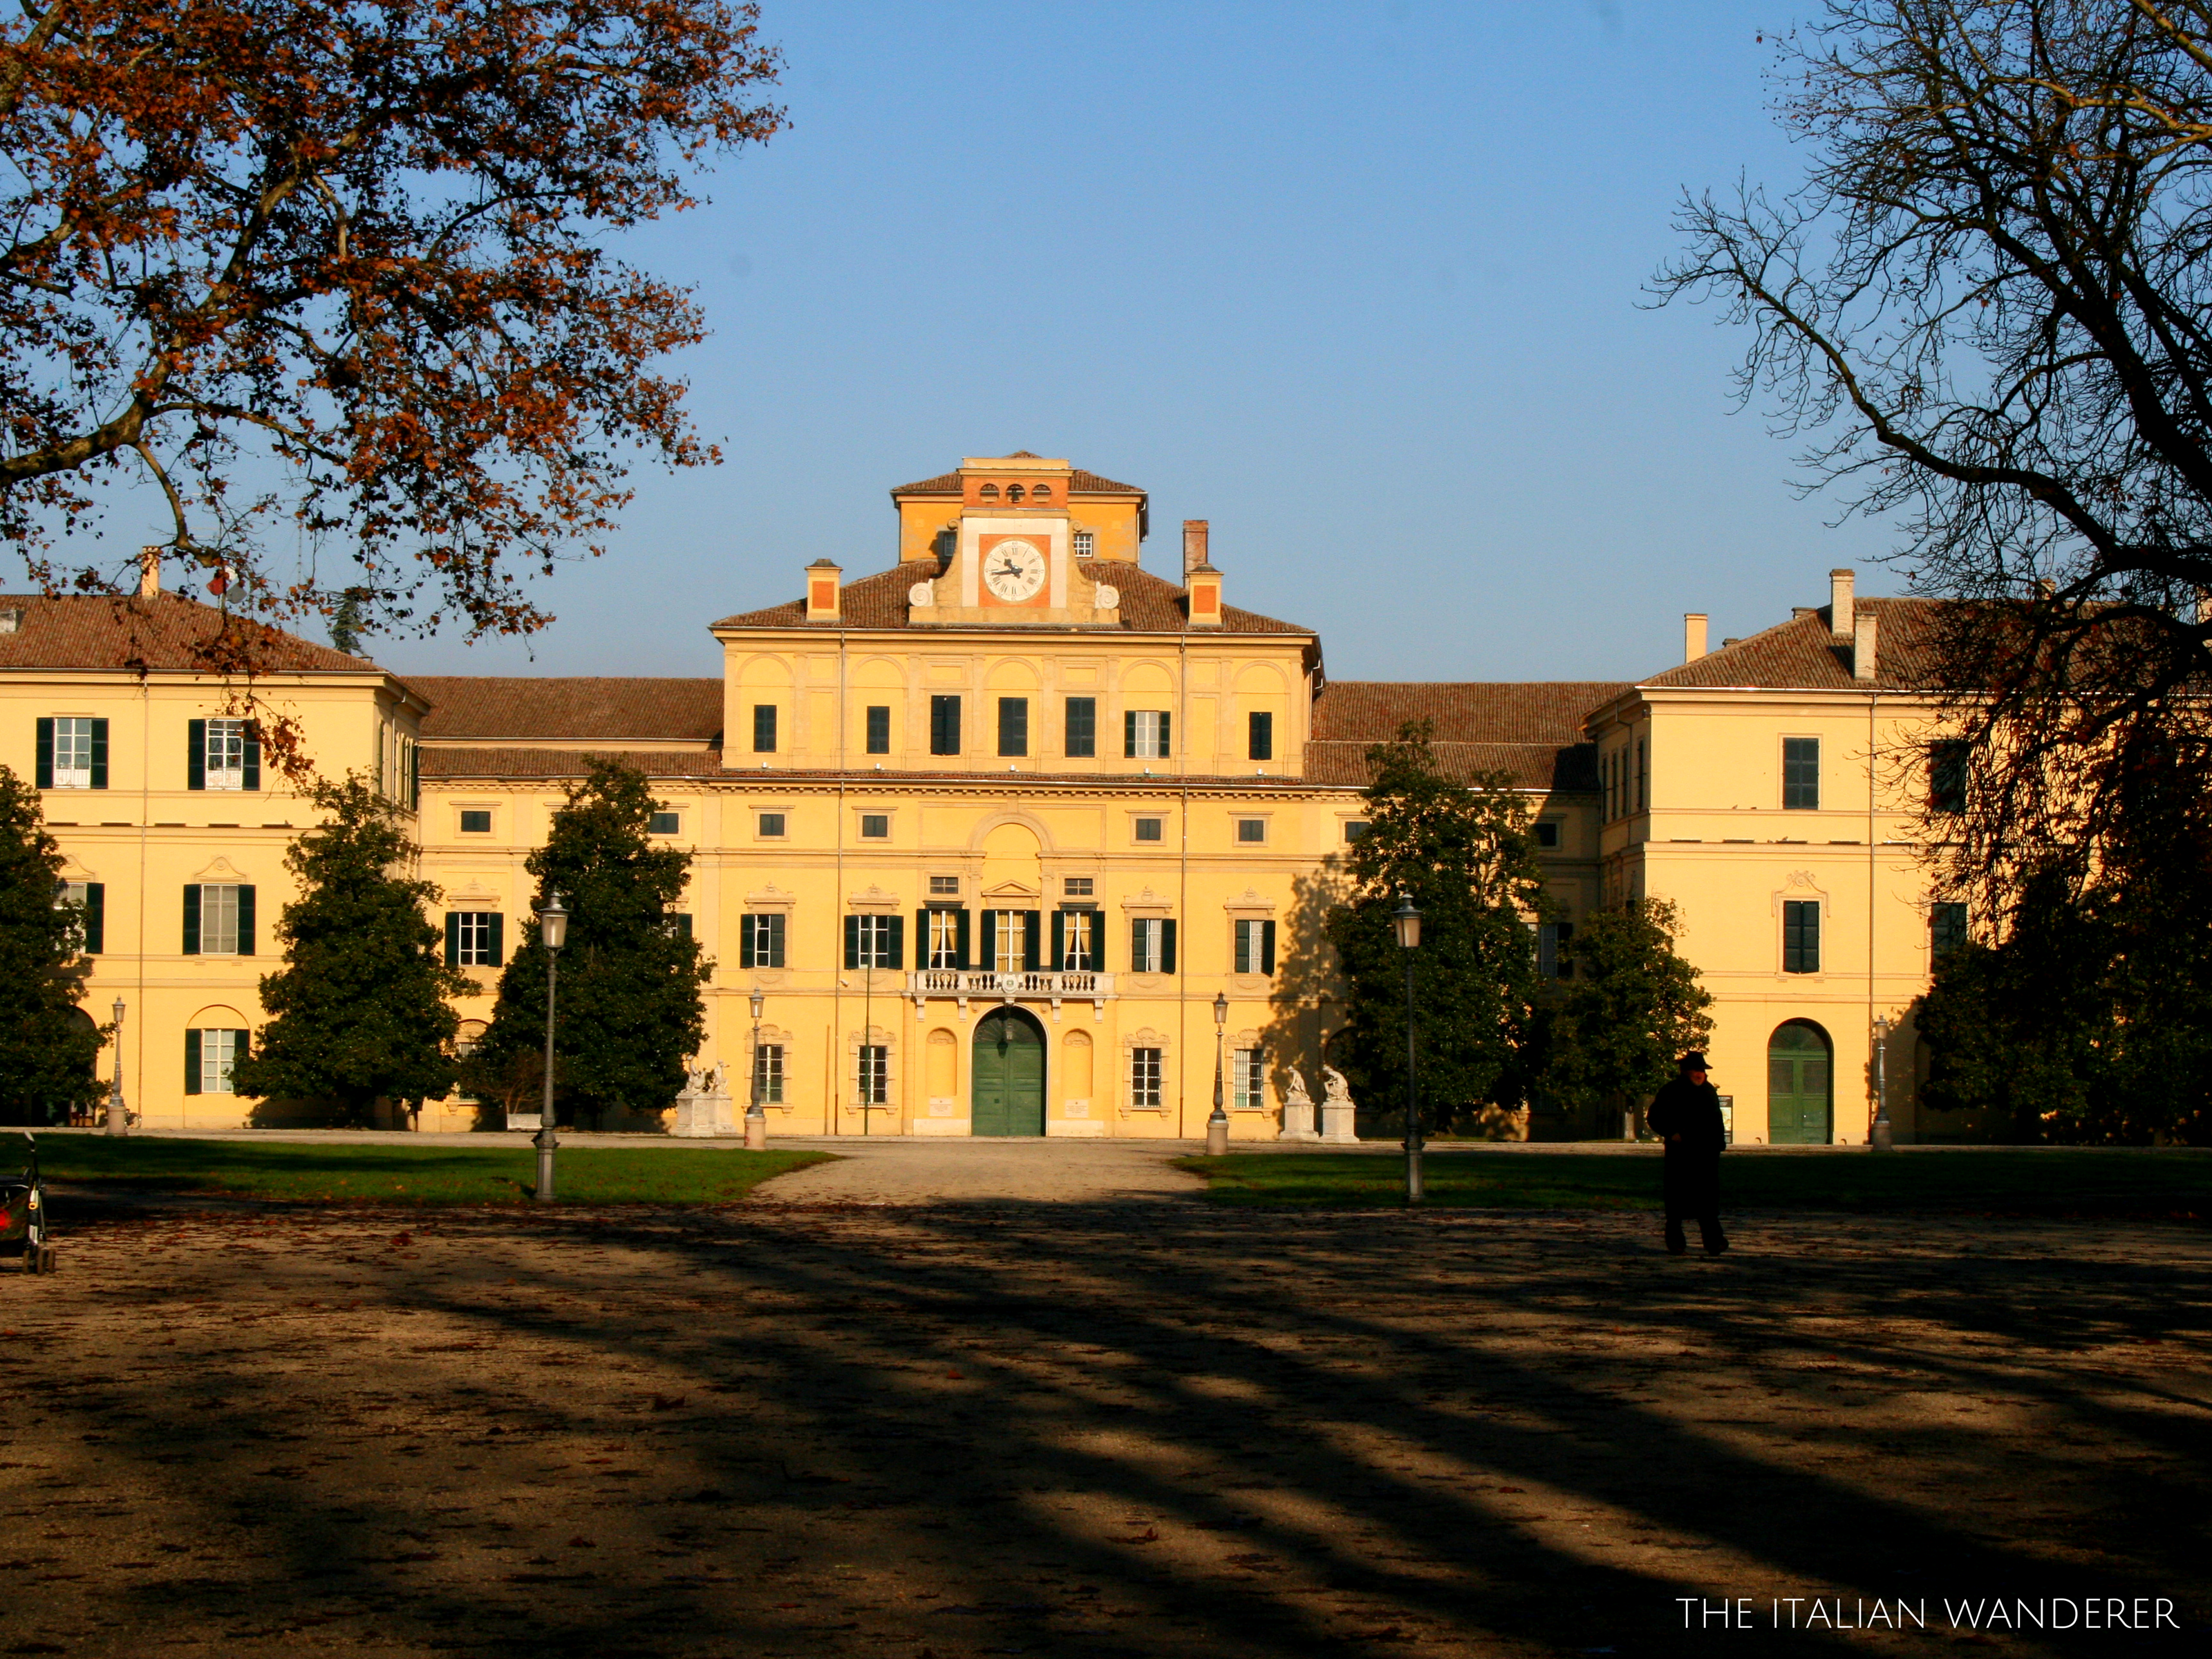 Palazzo Ducale of Parma